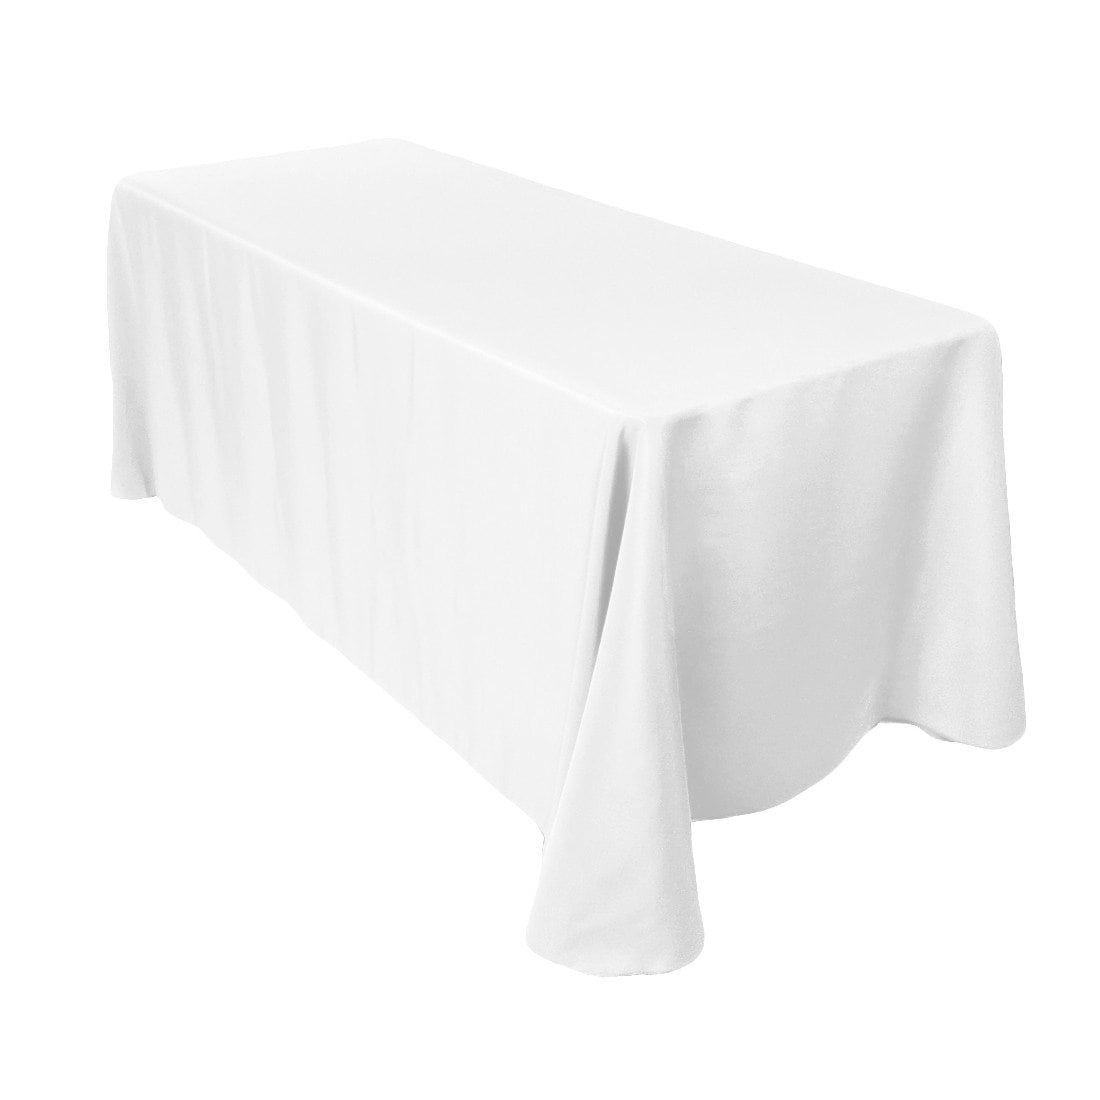 90 x 132 white long tablecloth